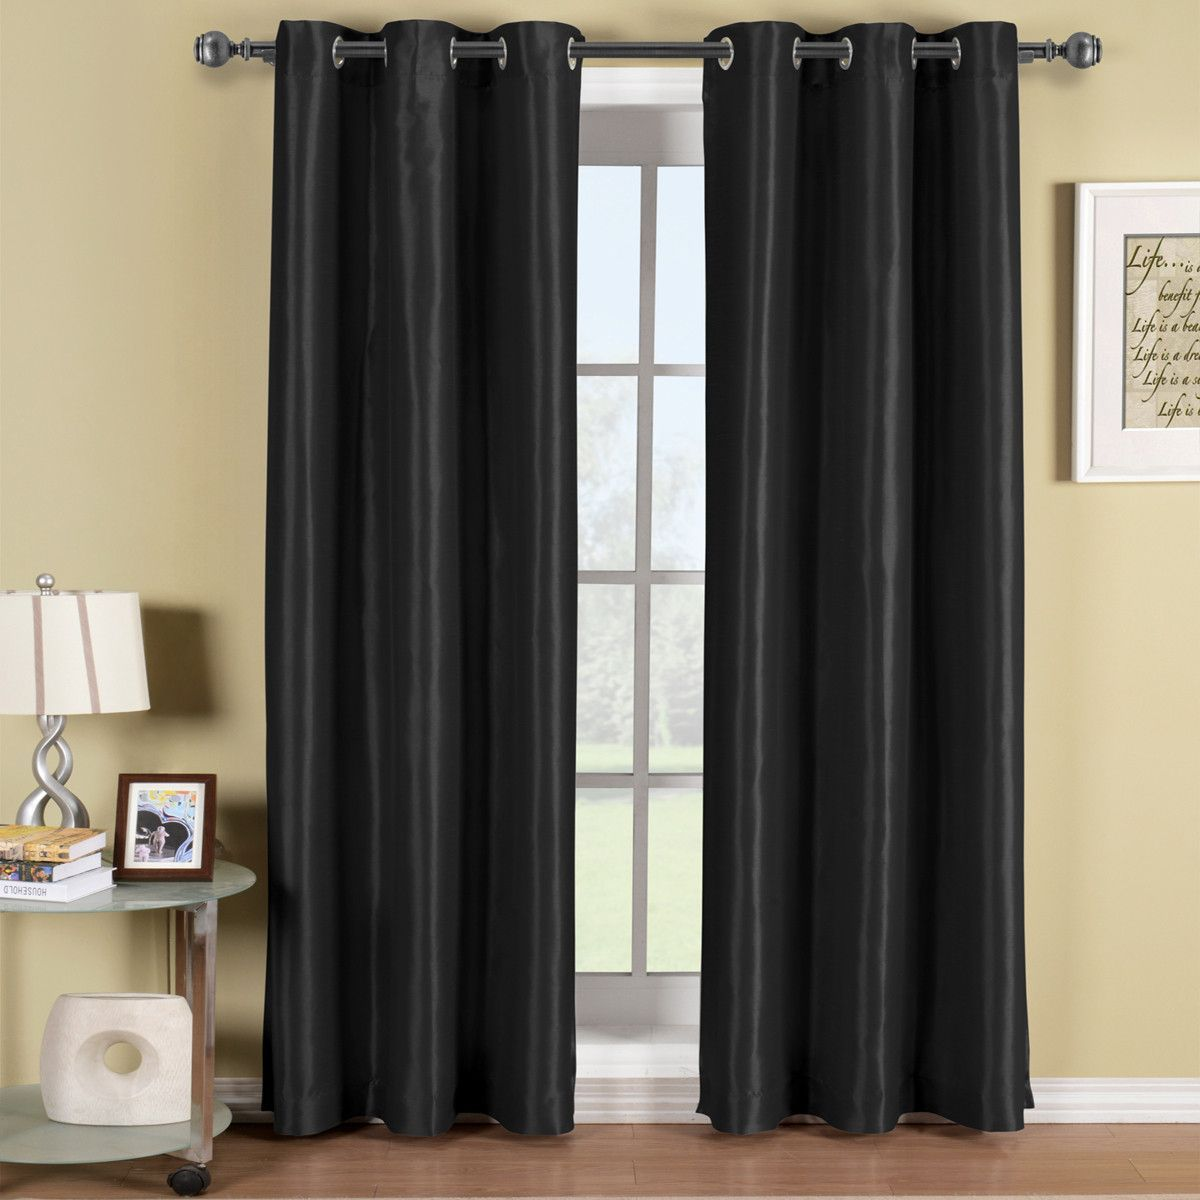 Soho Grommet Thermal Blackout Window Curtain Panel Curtains